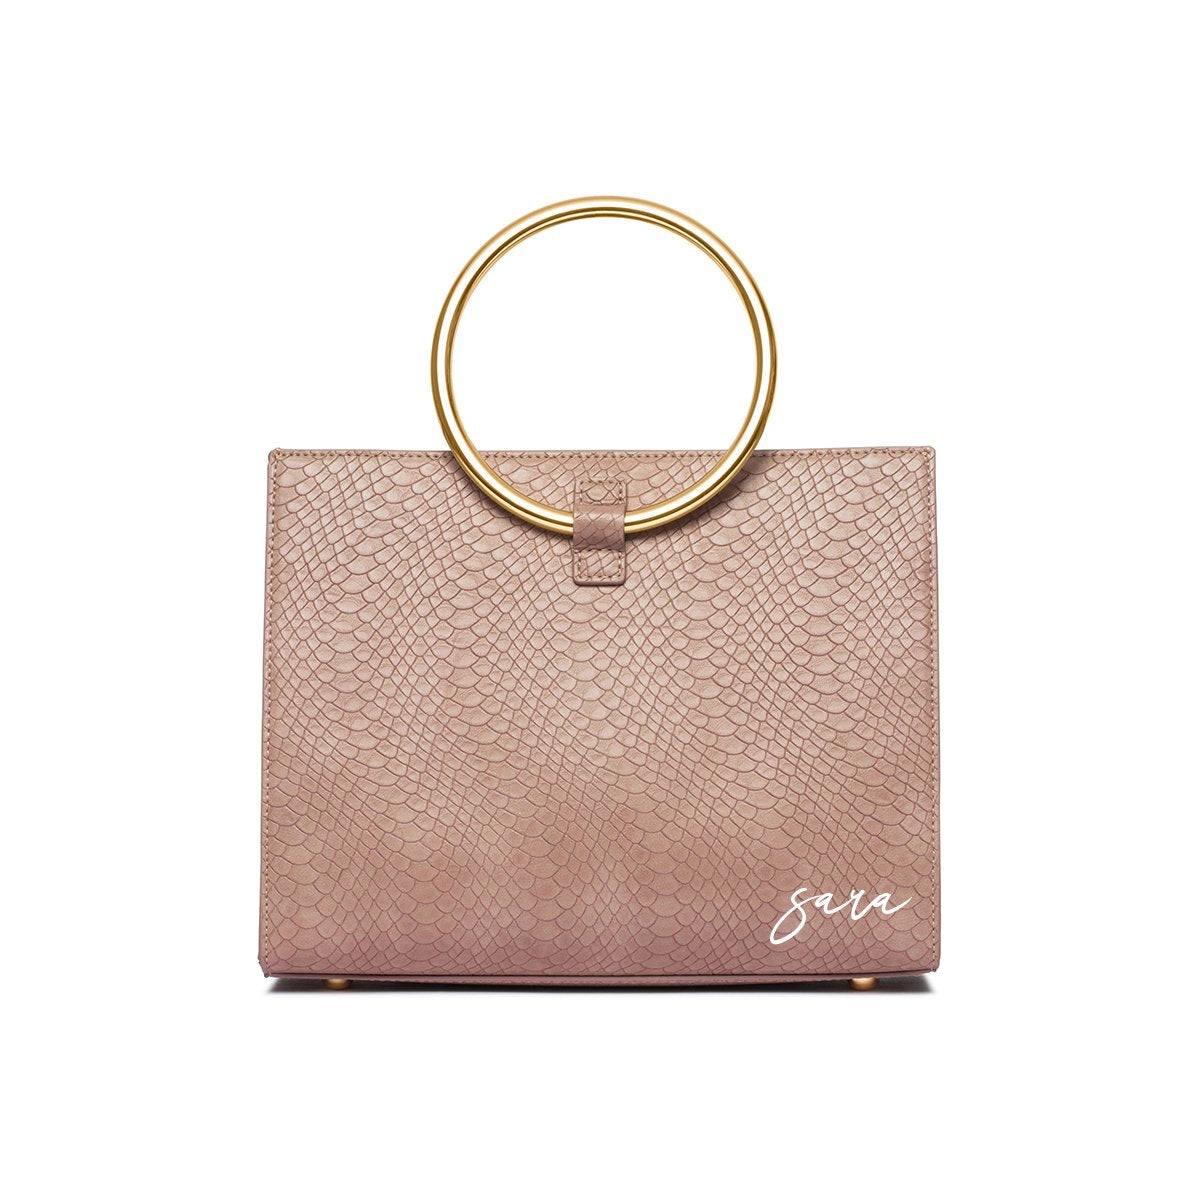 Moda Top Handle Bag (Dusky Rose/Yellow Gold)